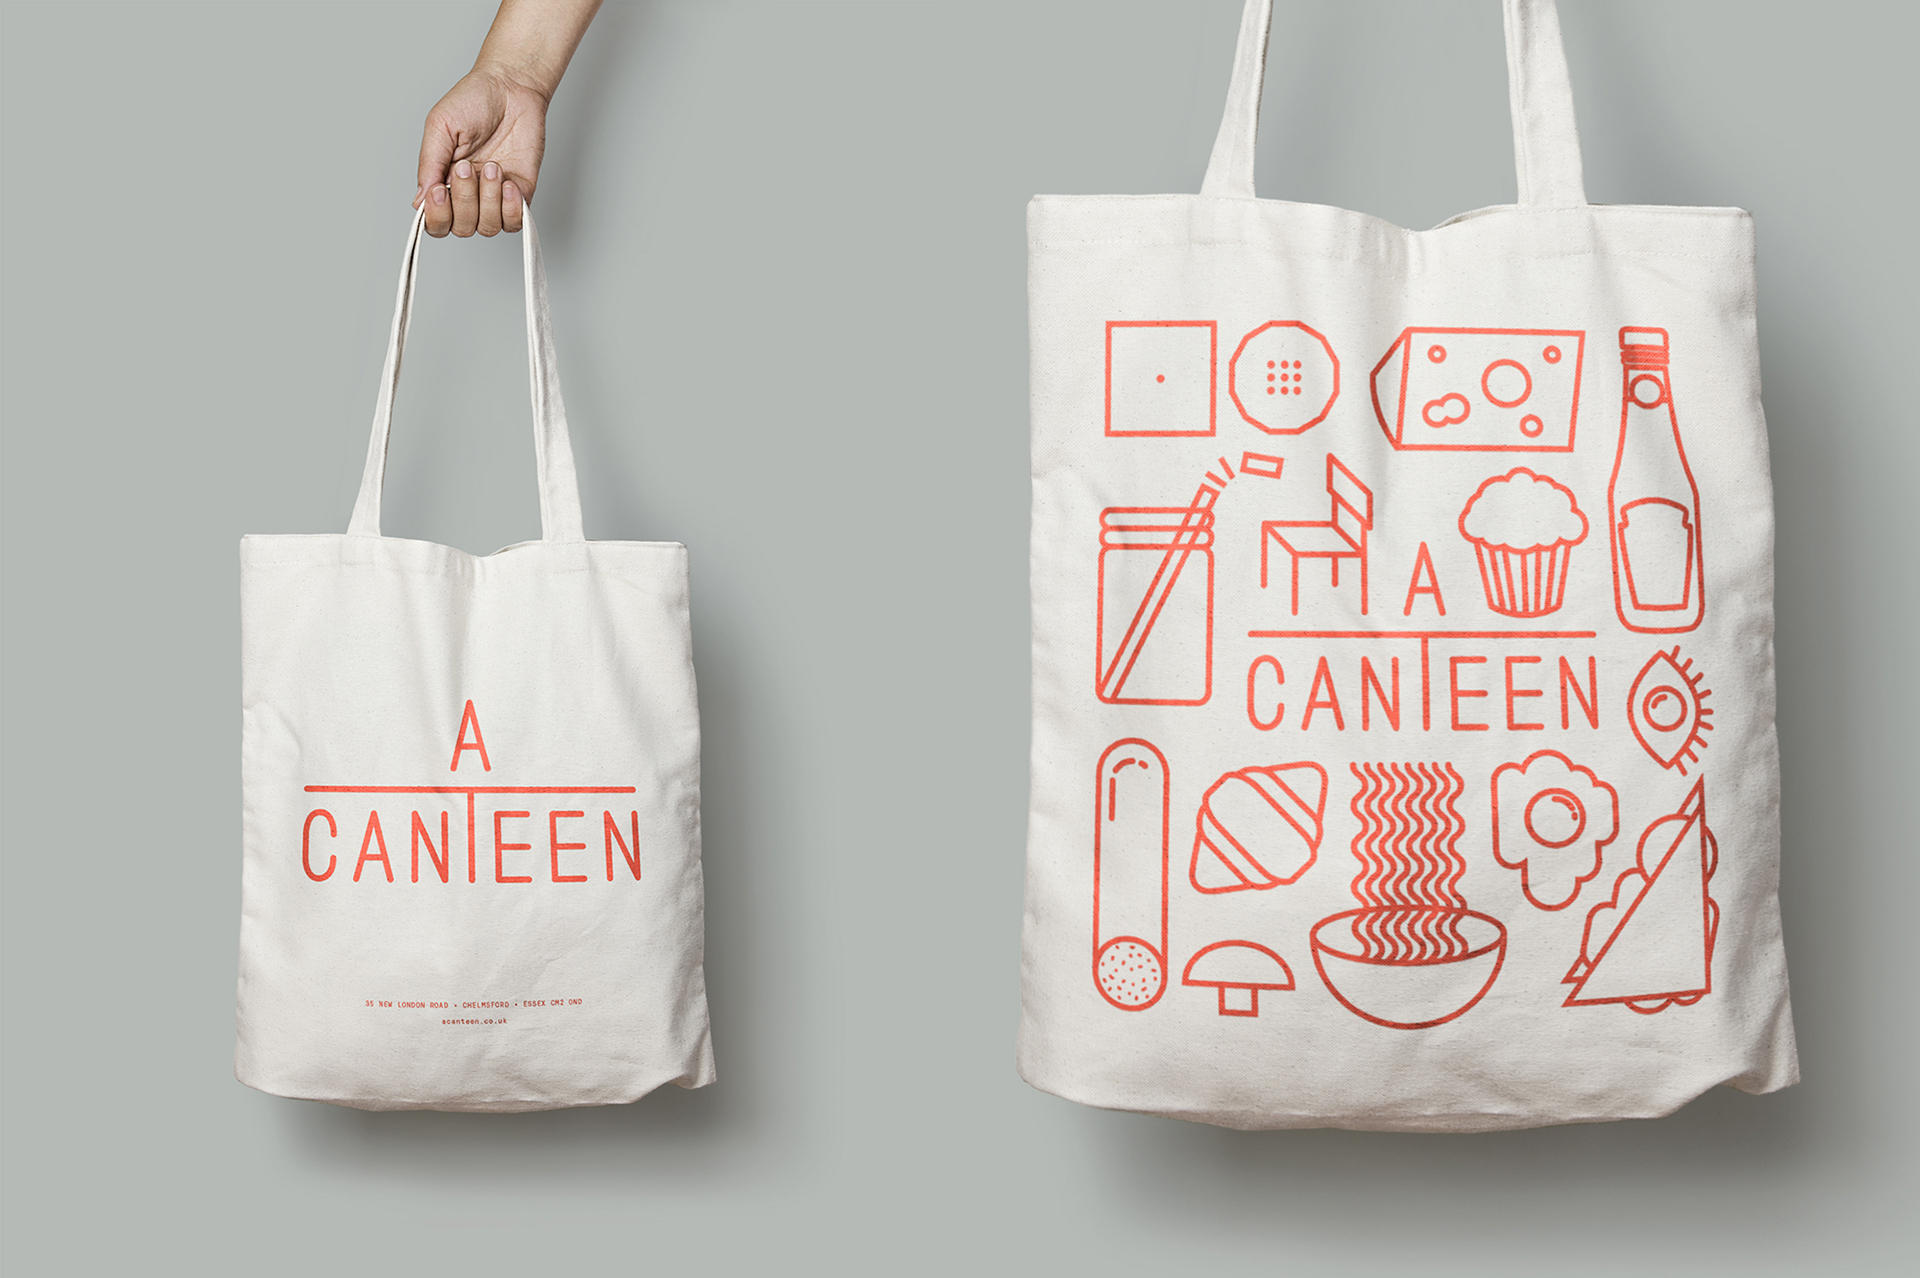 A Canteen bakery restaurant branding by IWANT Design in London UK